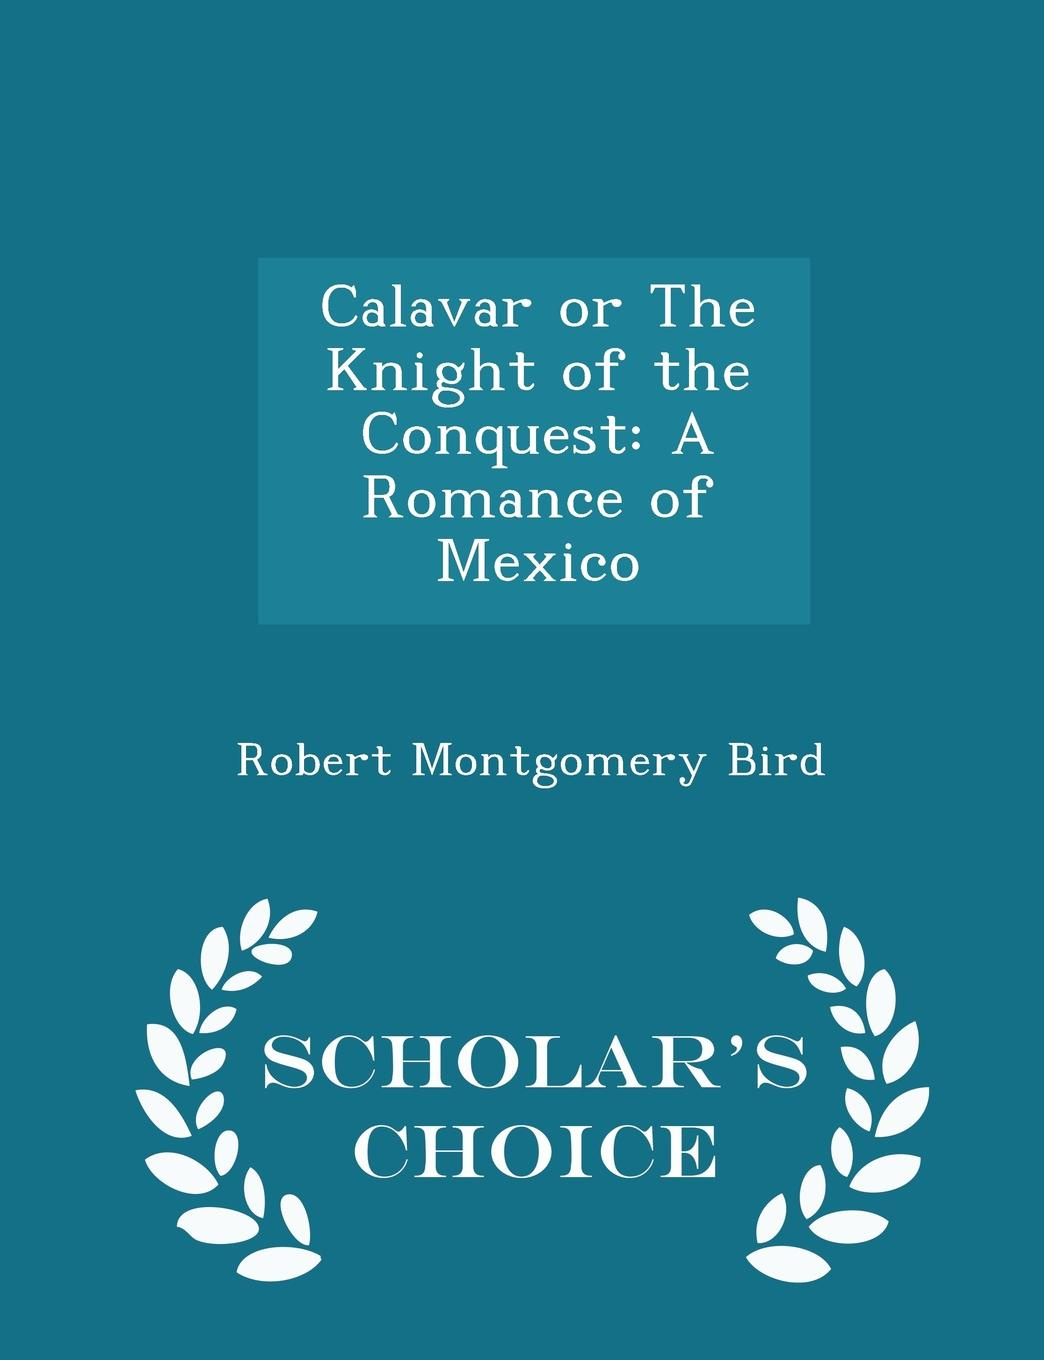 Robert Montgomery Bird Calavar or The Knight of the Conquest. A Romance of Mexico - Scholar.s Choice Edition bird robert montgomery calavar or the knight of the conquest a romance of mexico